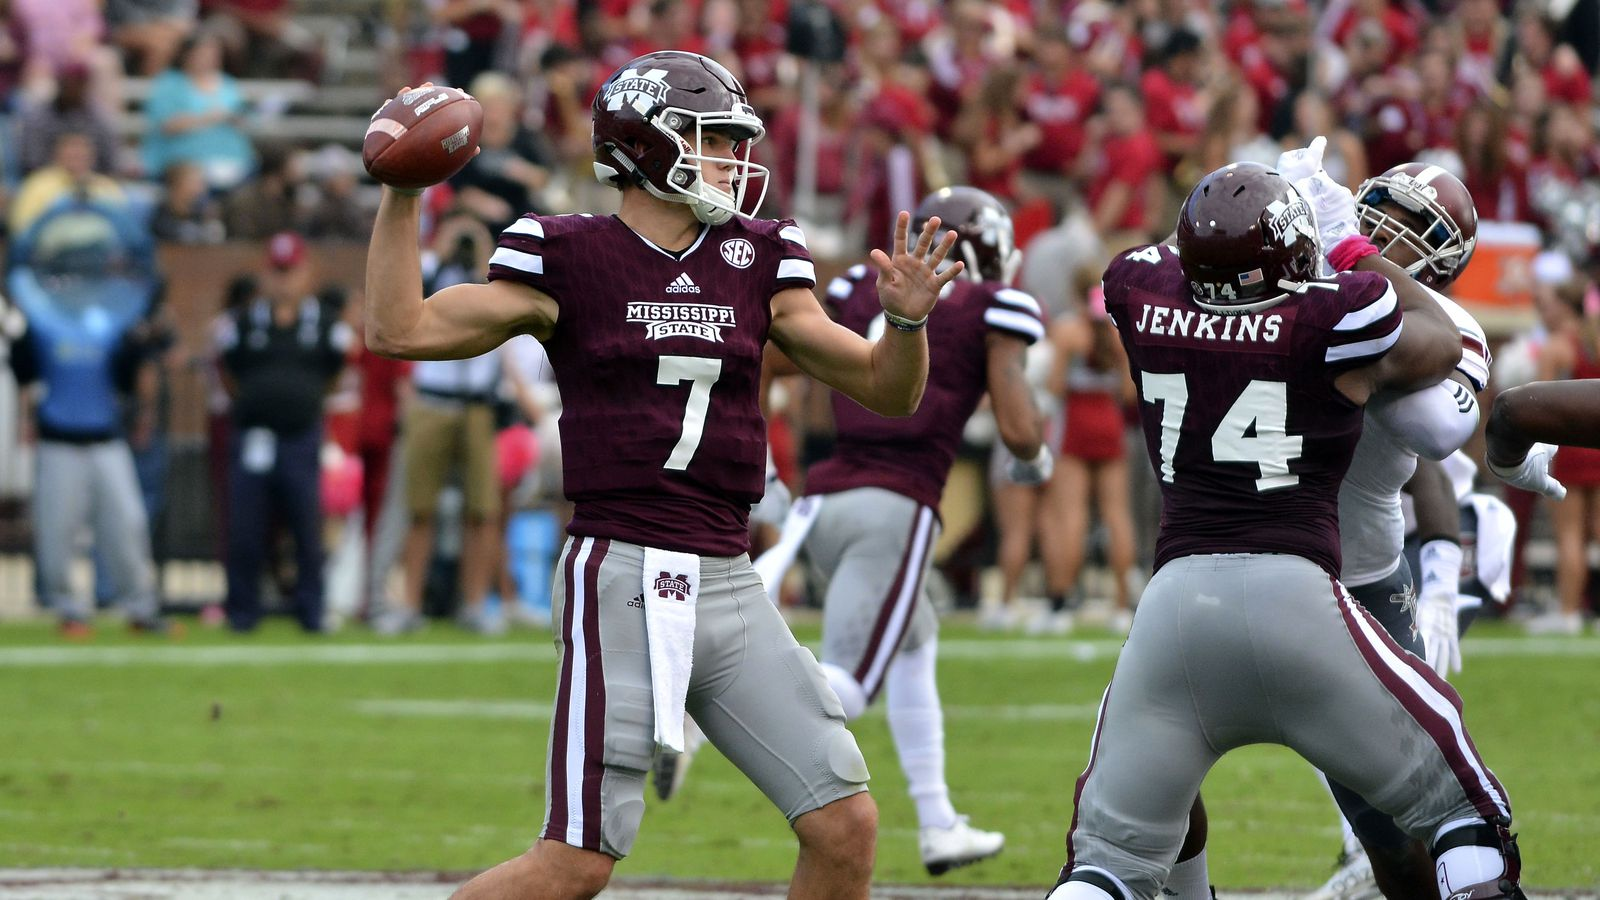 2017 mississippi state bulldog football schedule released